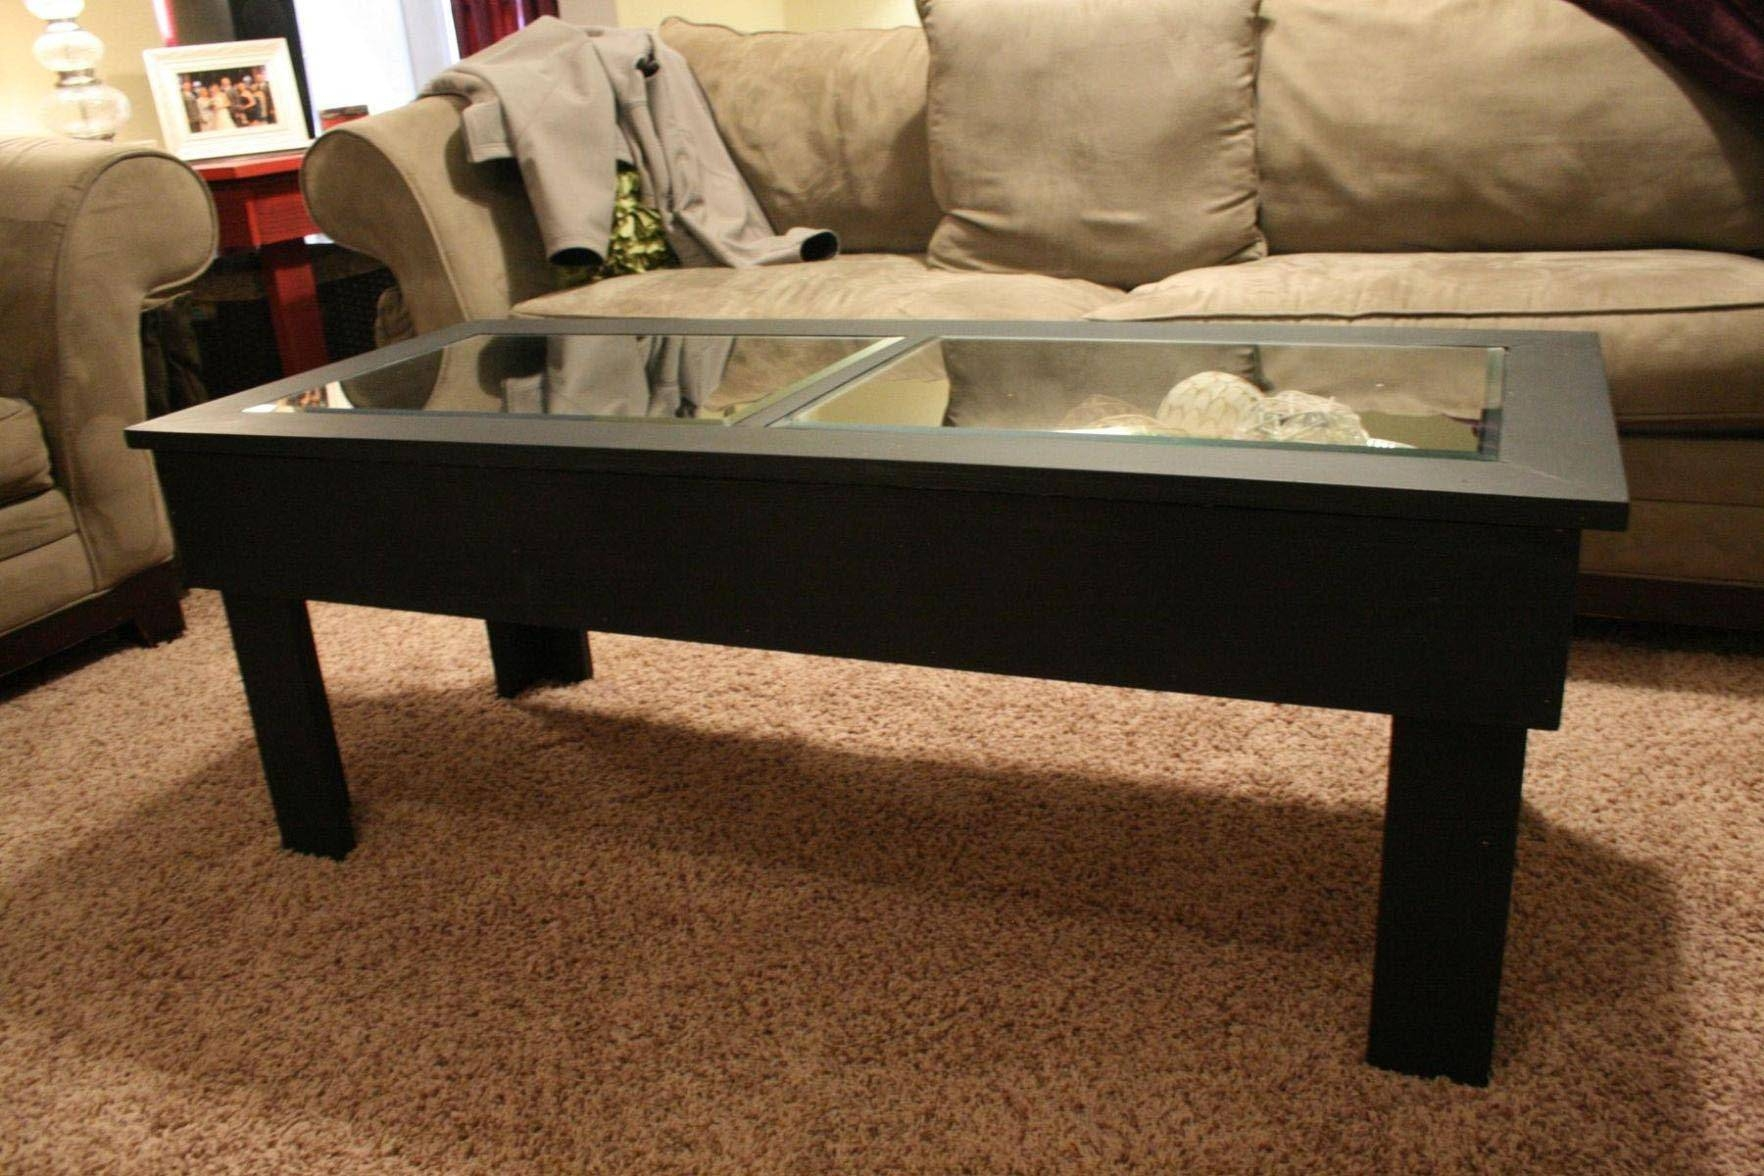 Coffee Table Display Case Glass Top Ikea | Coffee Table Design Ideas inside Coffee Tables With Glass Top Display Drawer (Image 3 of 30)